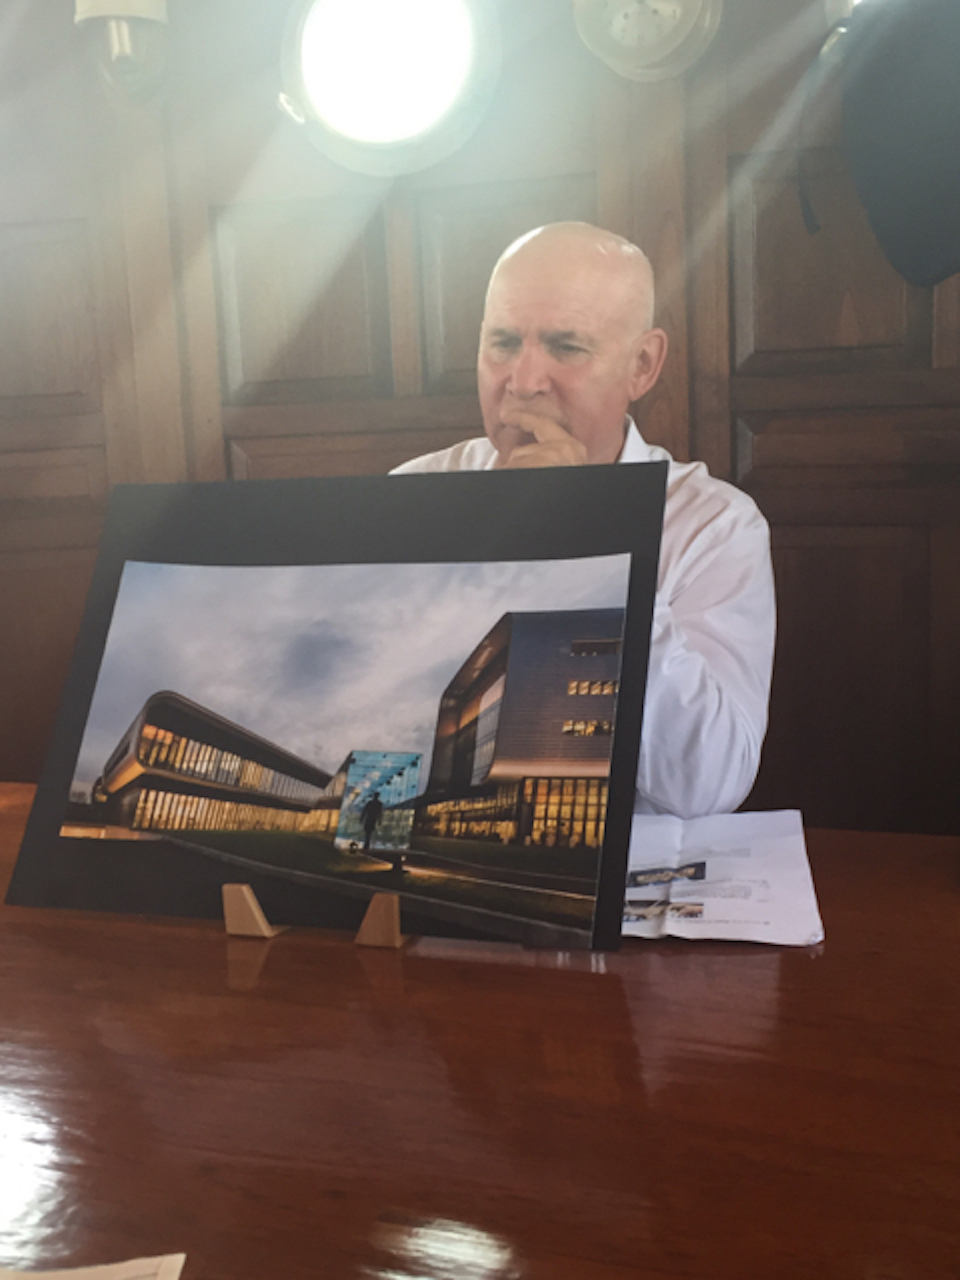 steve-mccurry-talks-about-his-photos-from-around-the-world